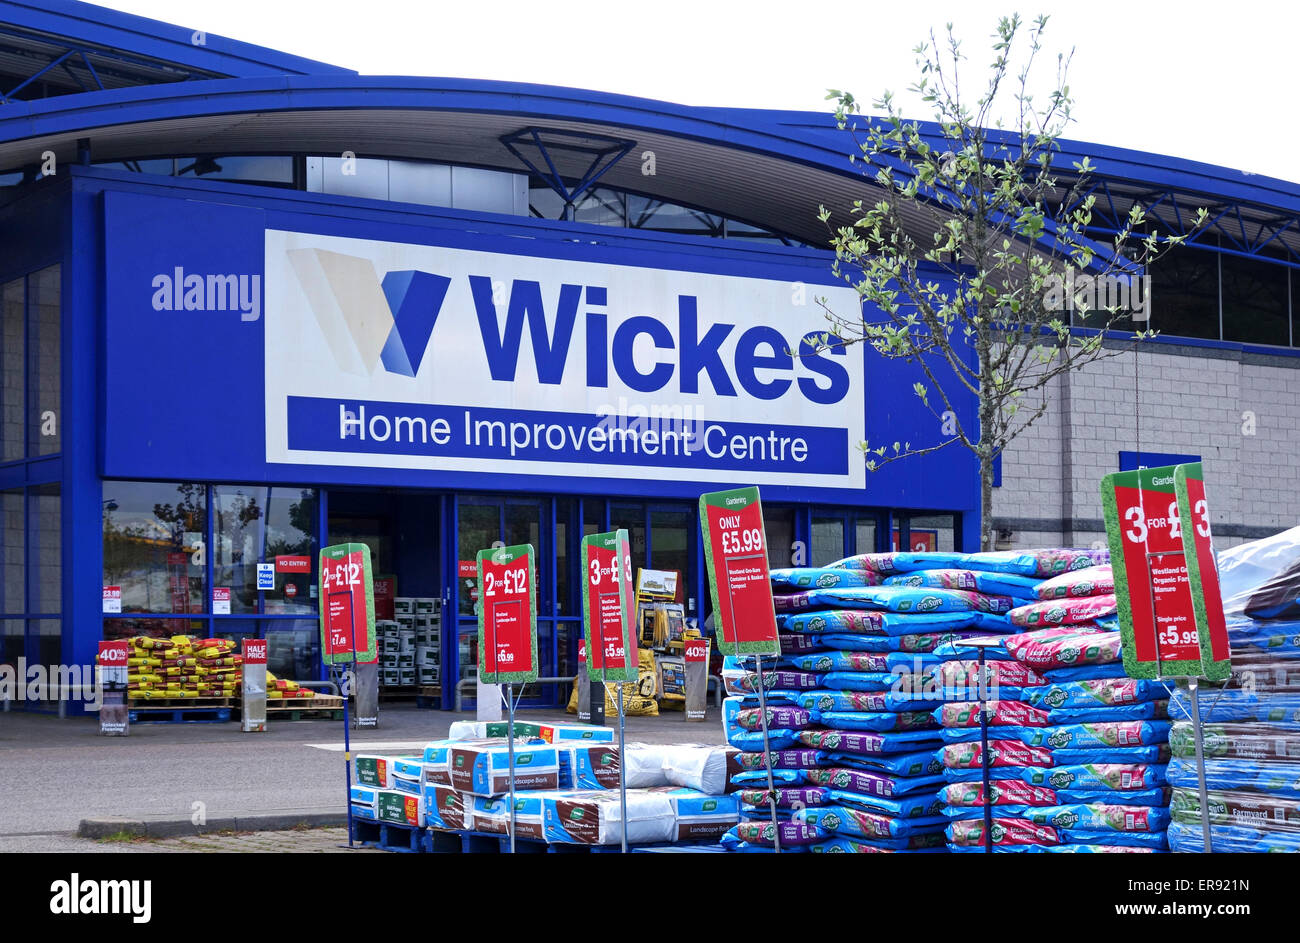 Wickes home improvement centre - Stock Image